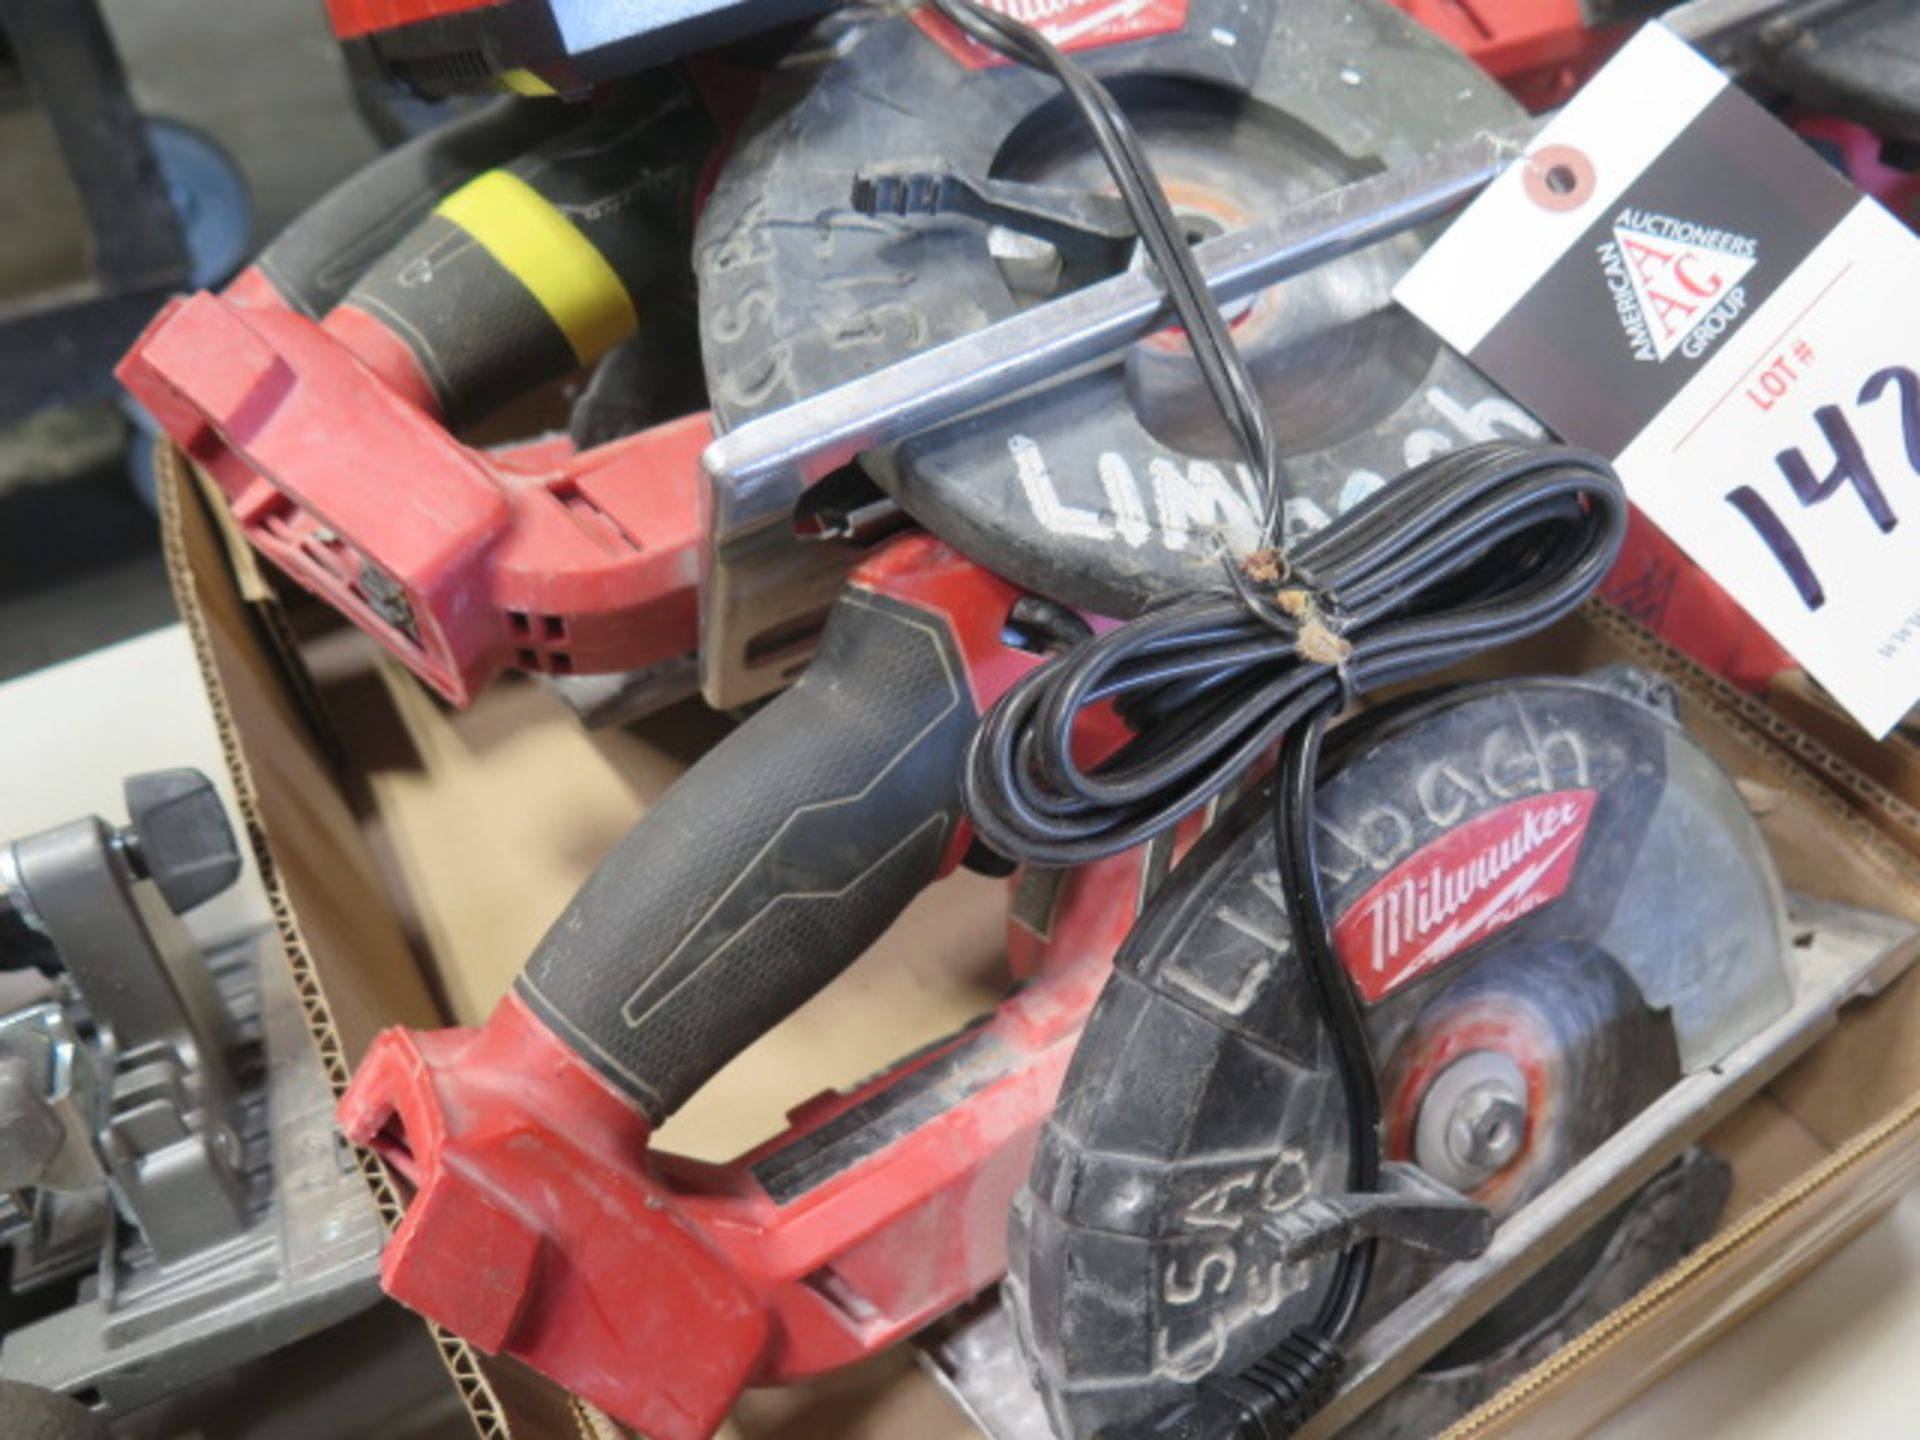 Milwaukee 18 Volt Circular Saws (3) (SOLD AS-IS - NO WARRANTY) - Image 3 of 5